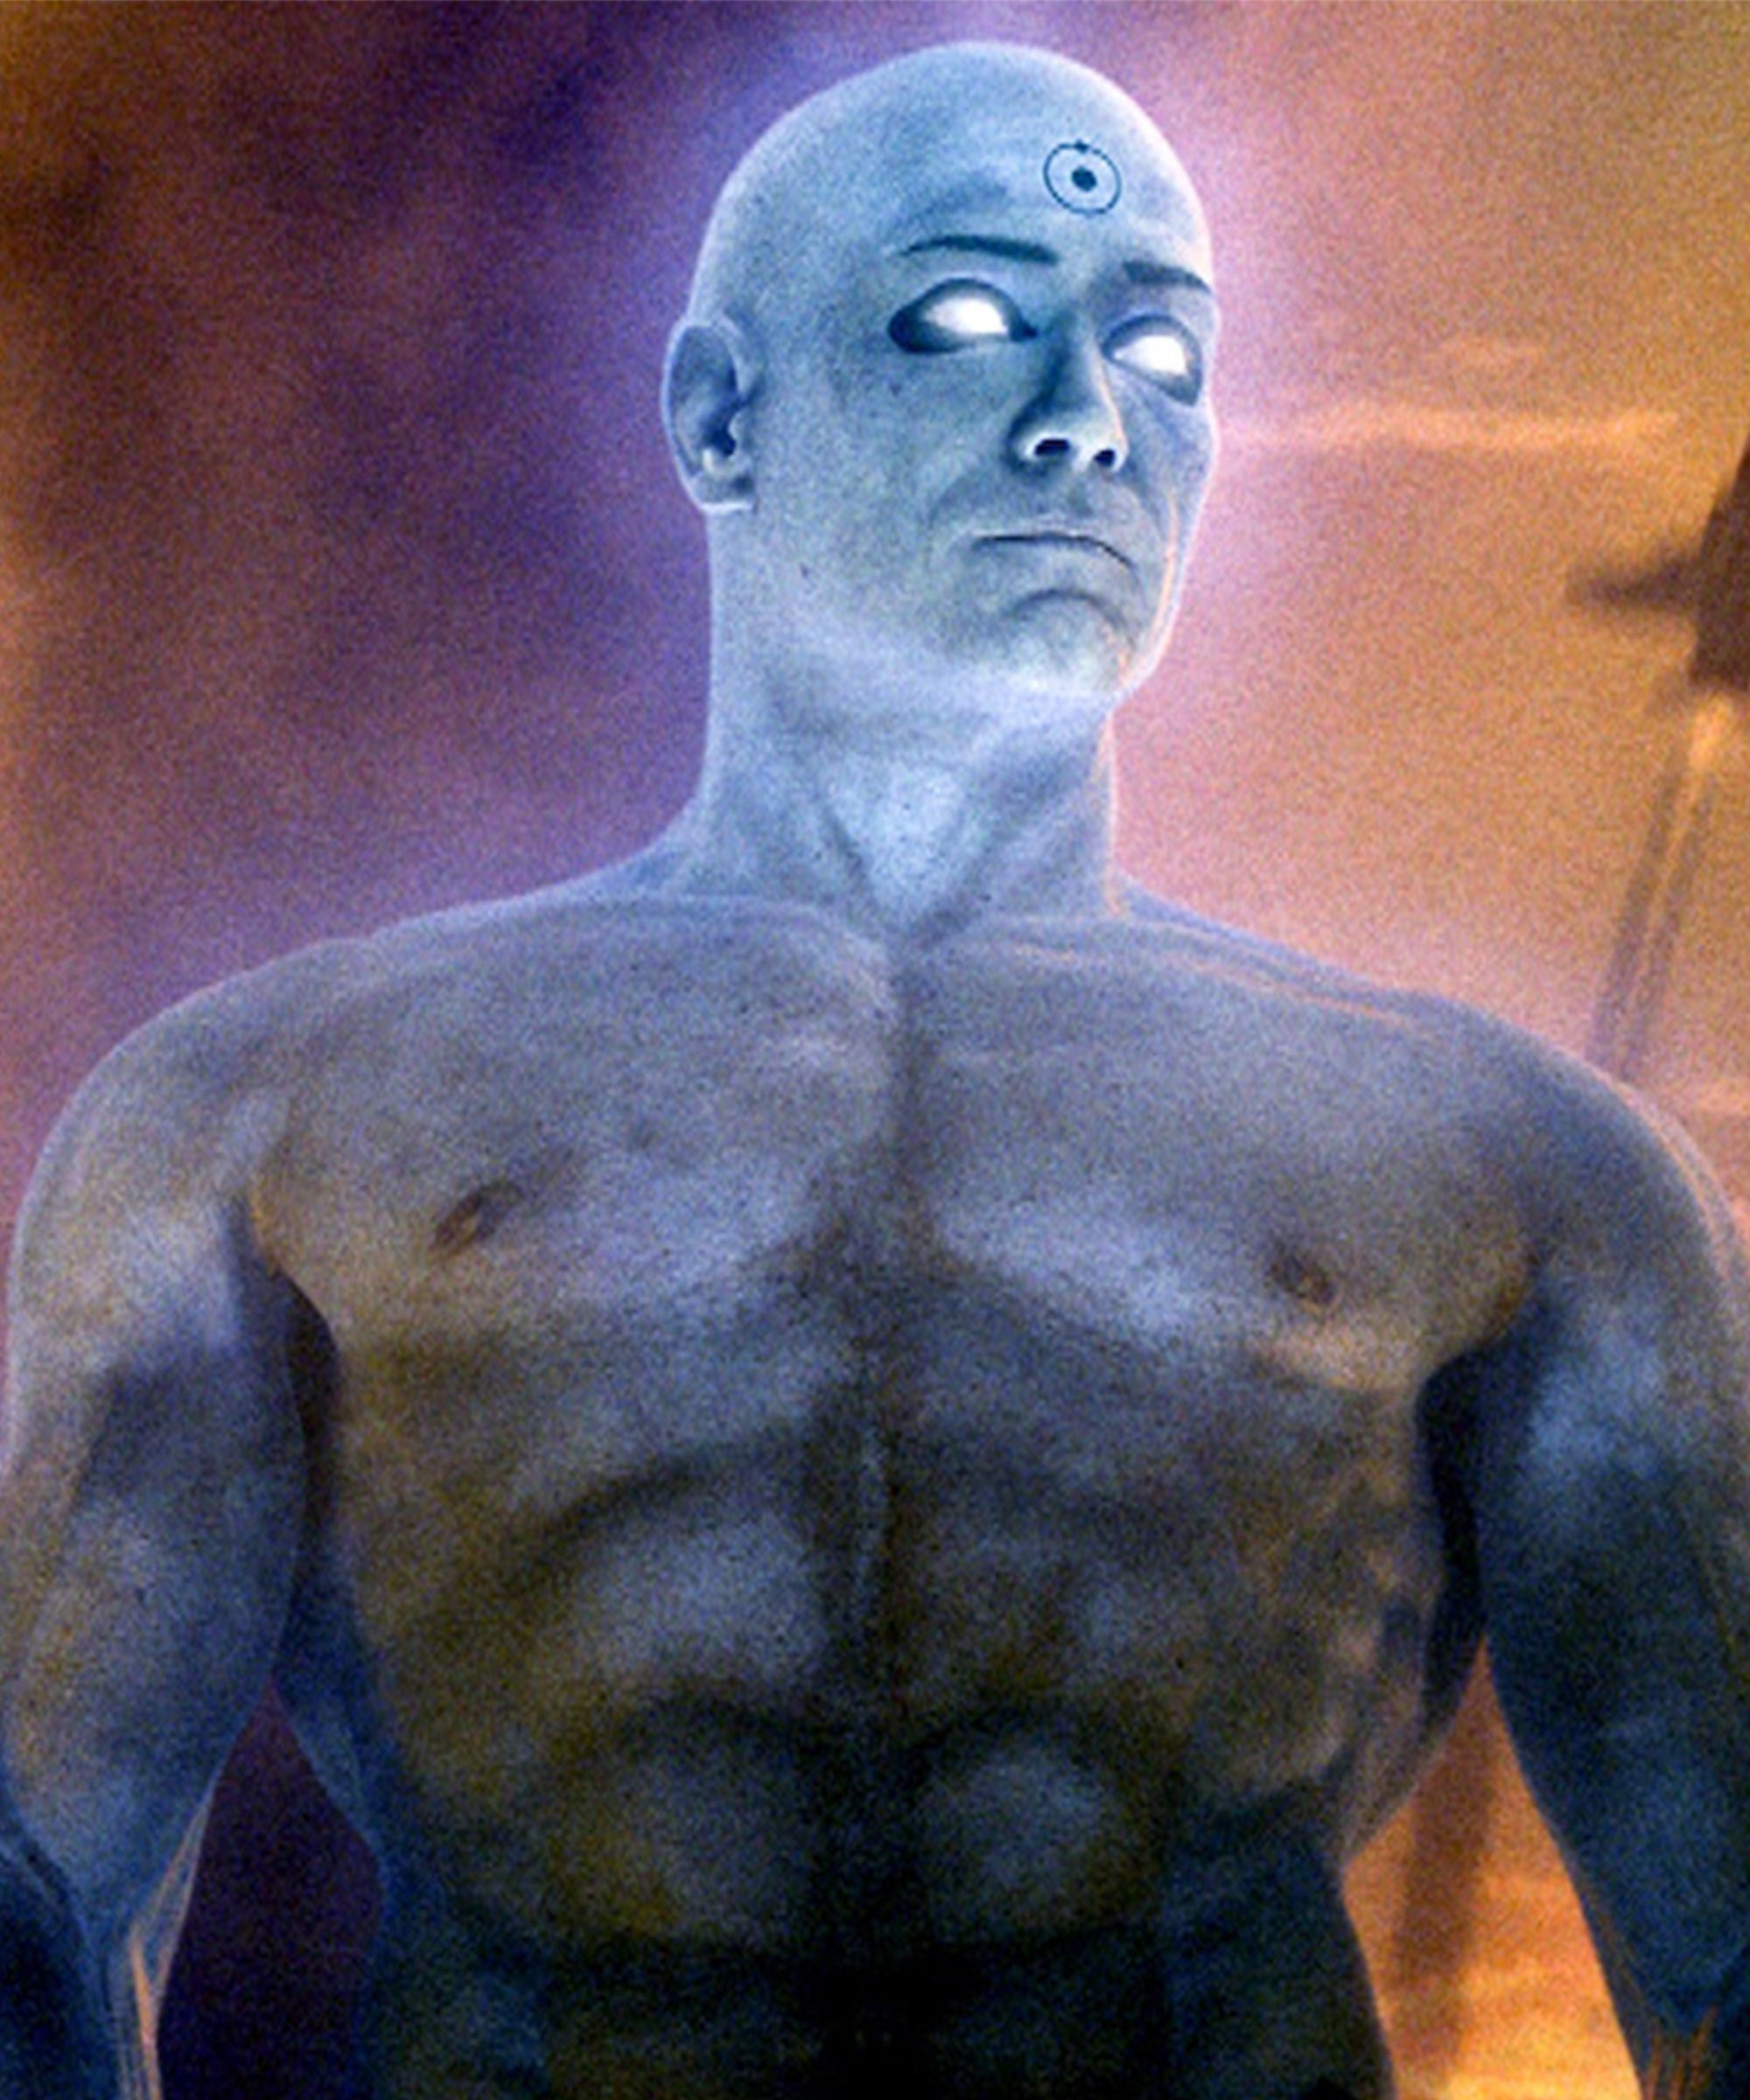 Doctor Manhattan Isn't A Martian: Everything You Need To Know For HBO's Watchmen